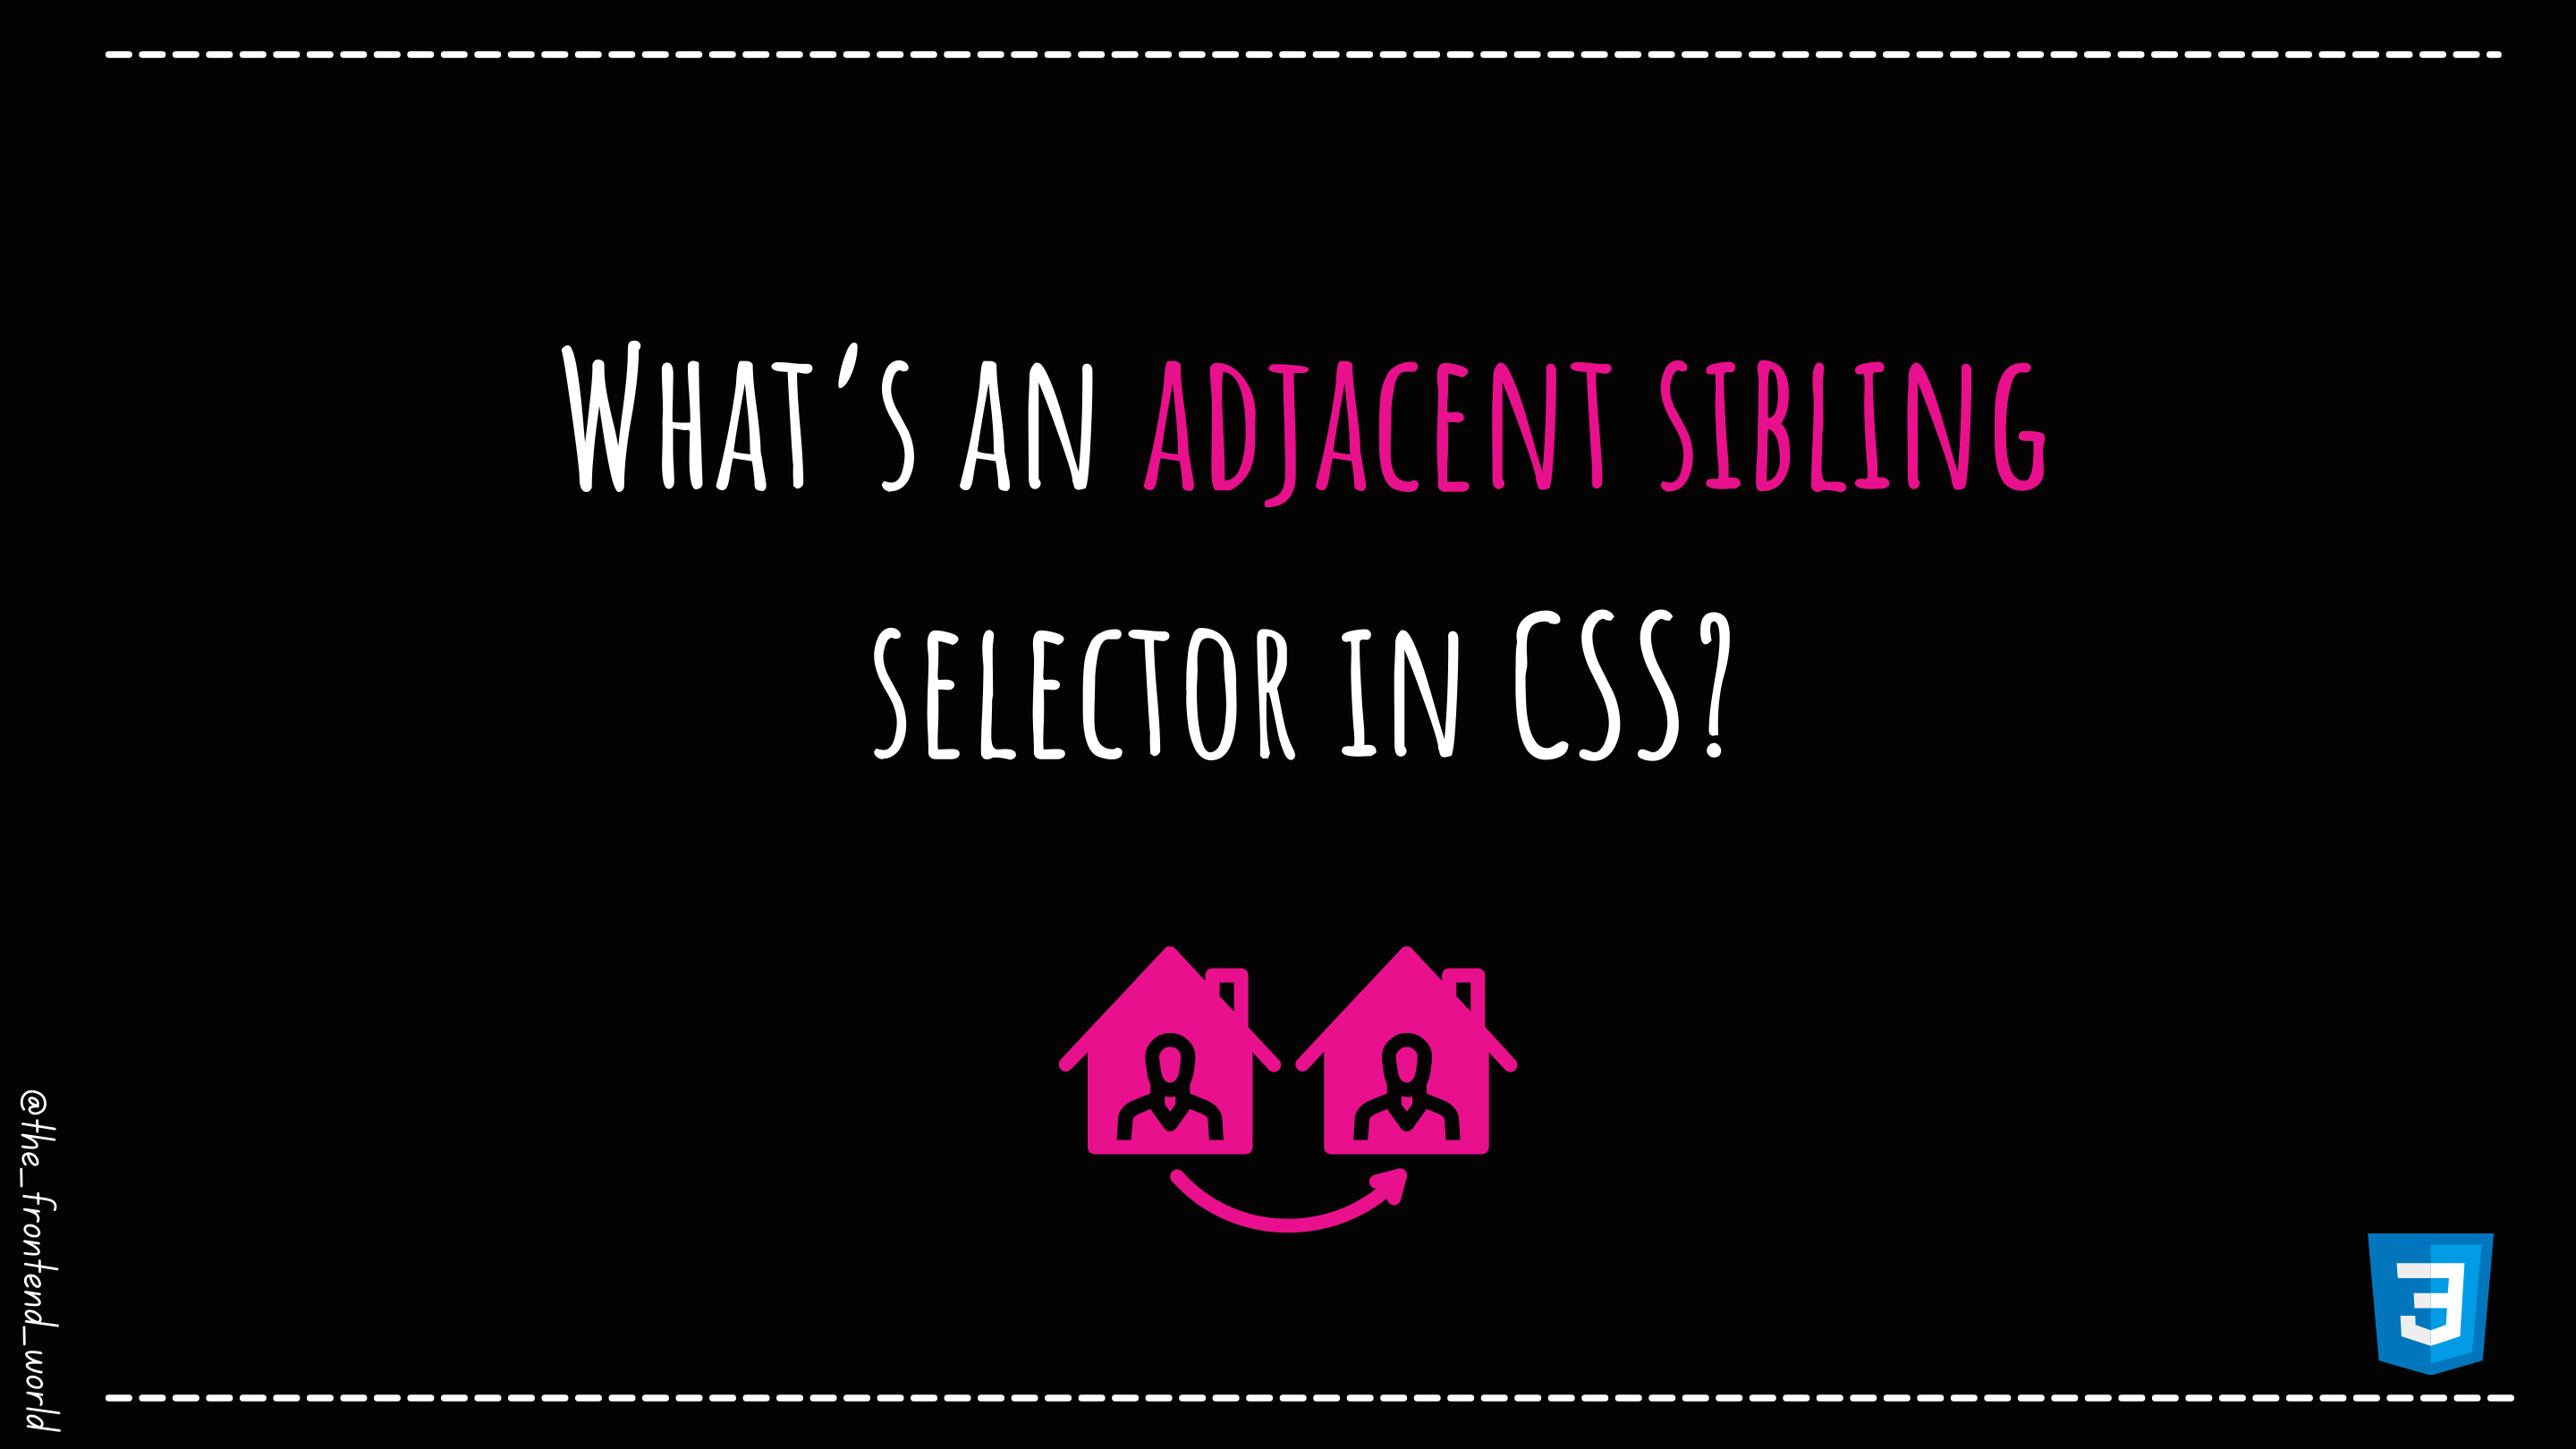 What's an adjacent sibling selector in CSS?